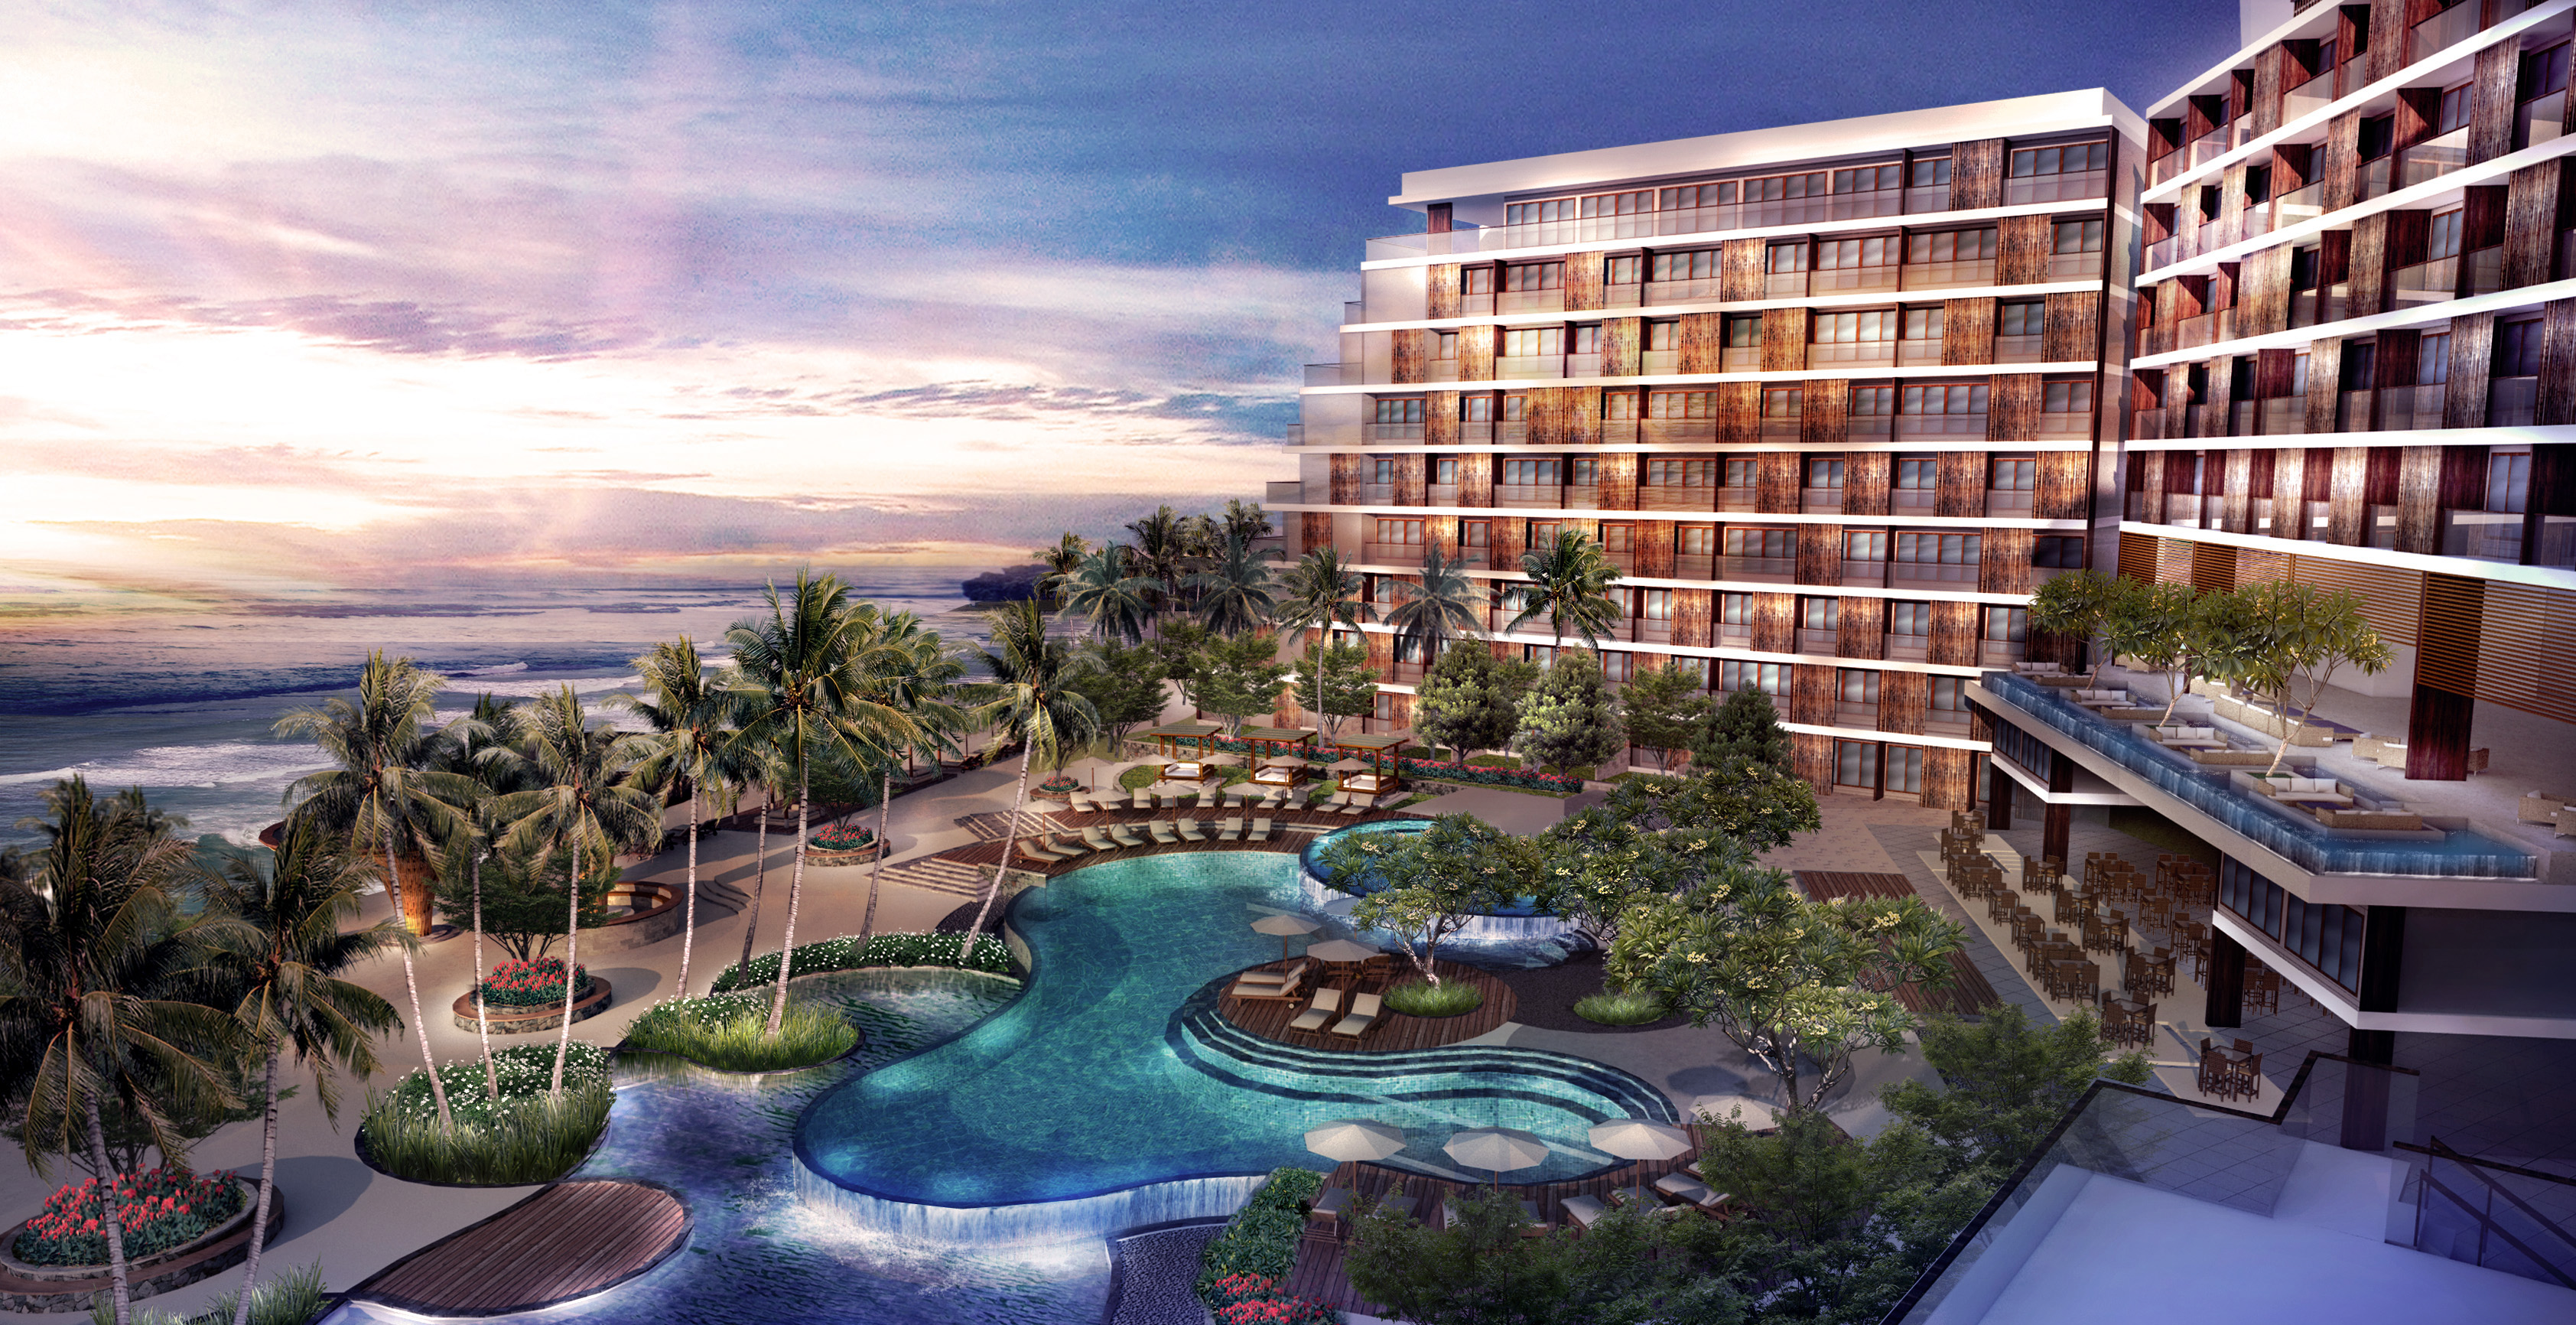 First Glimpse of Amari Galle Sri Lanka Set to Open Early 2017